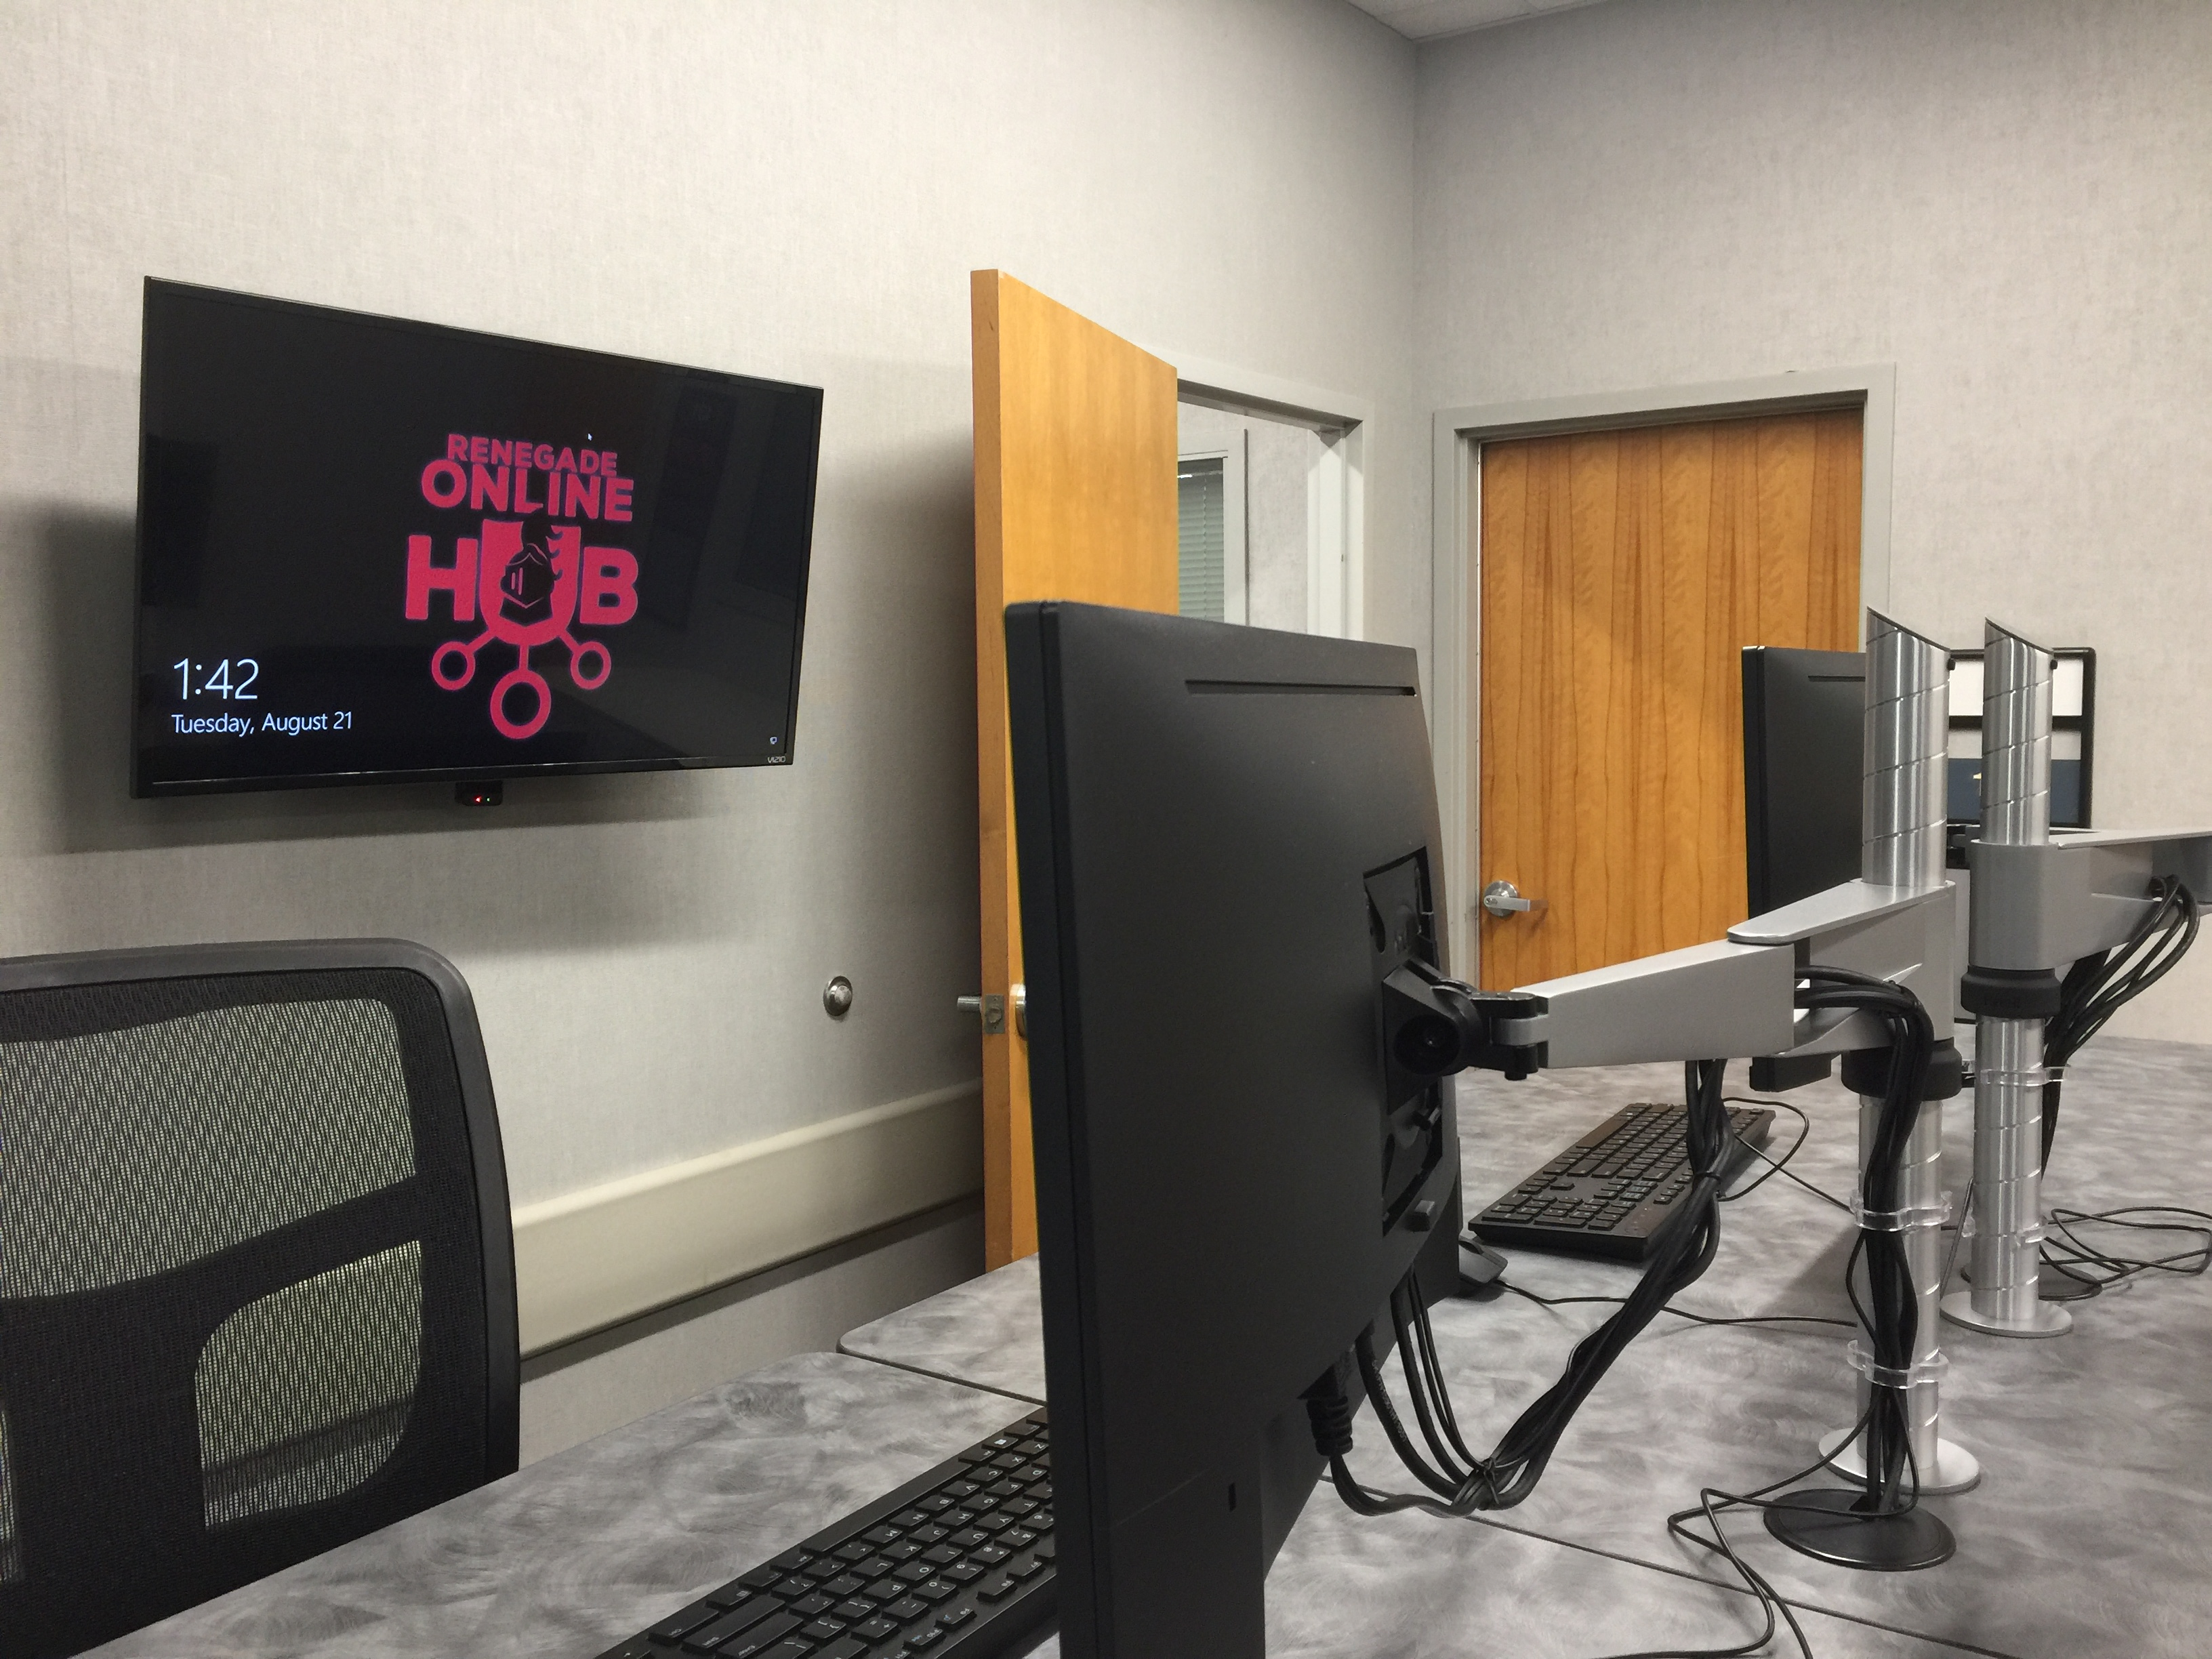 Desk with two monitors and a wall with a tv screen with Renegade Online Hub logo